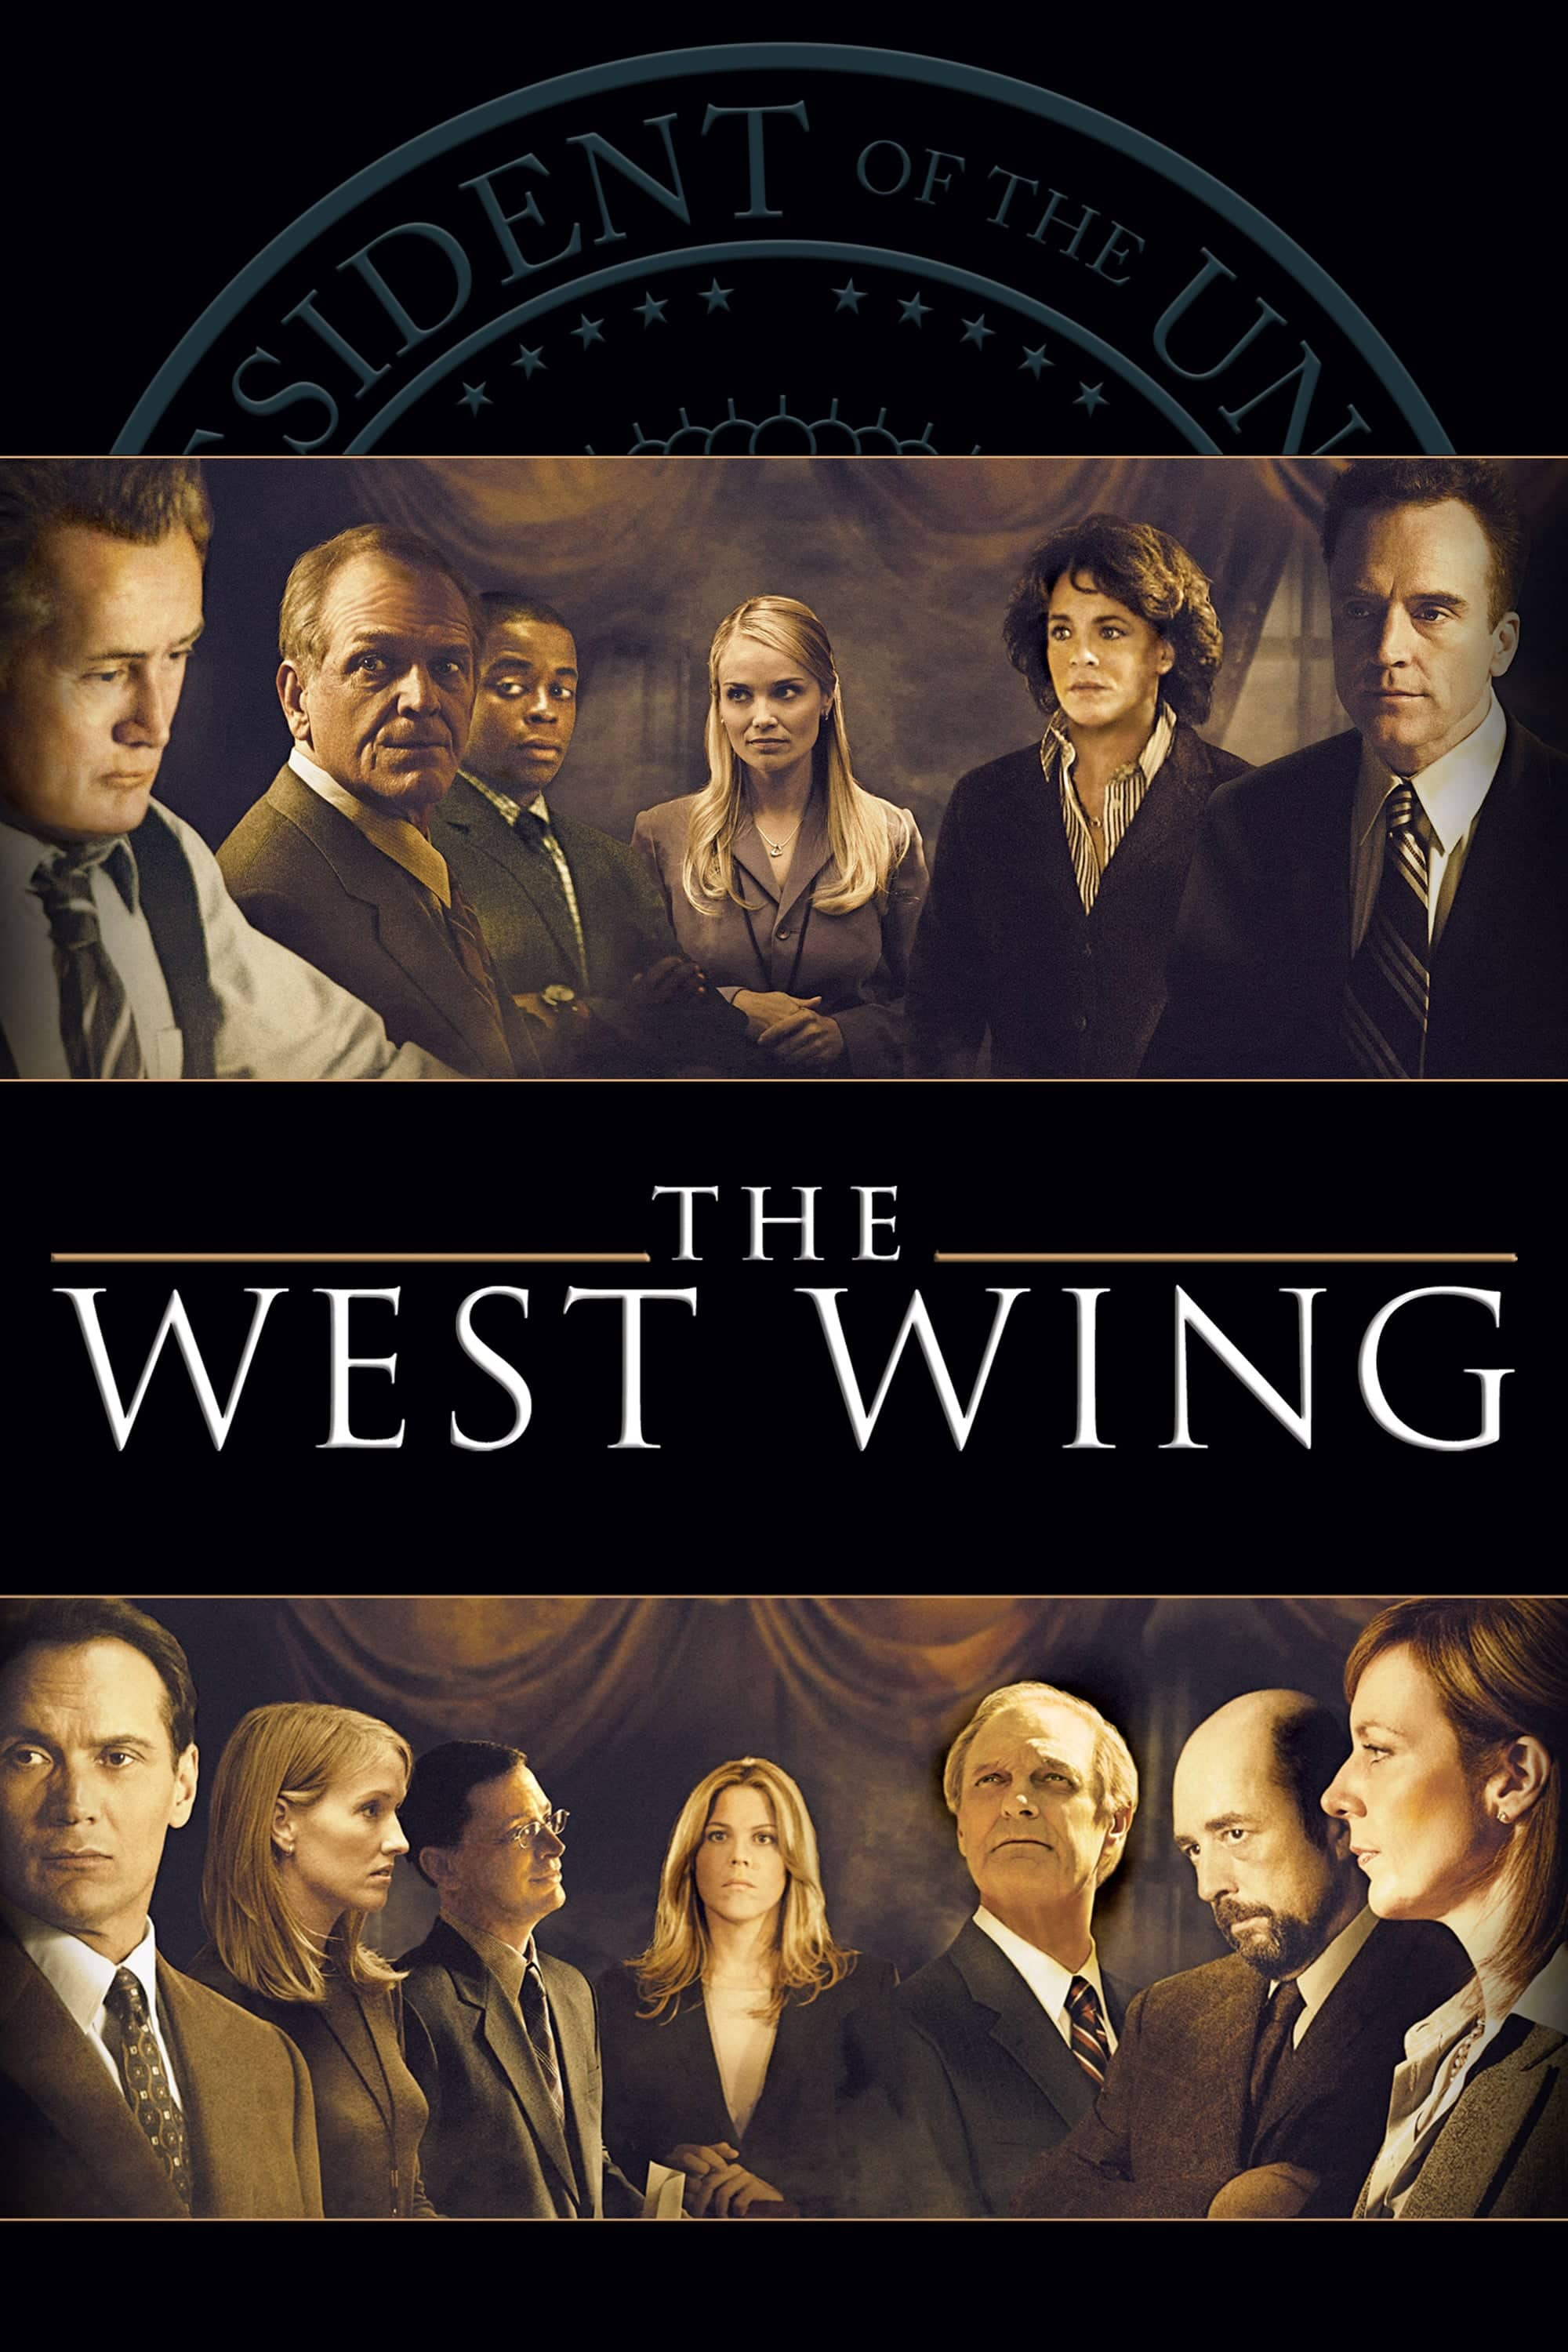 The West Wing, 1999